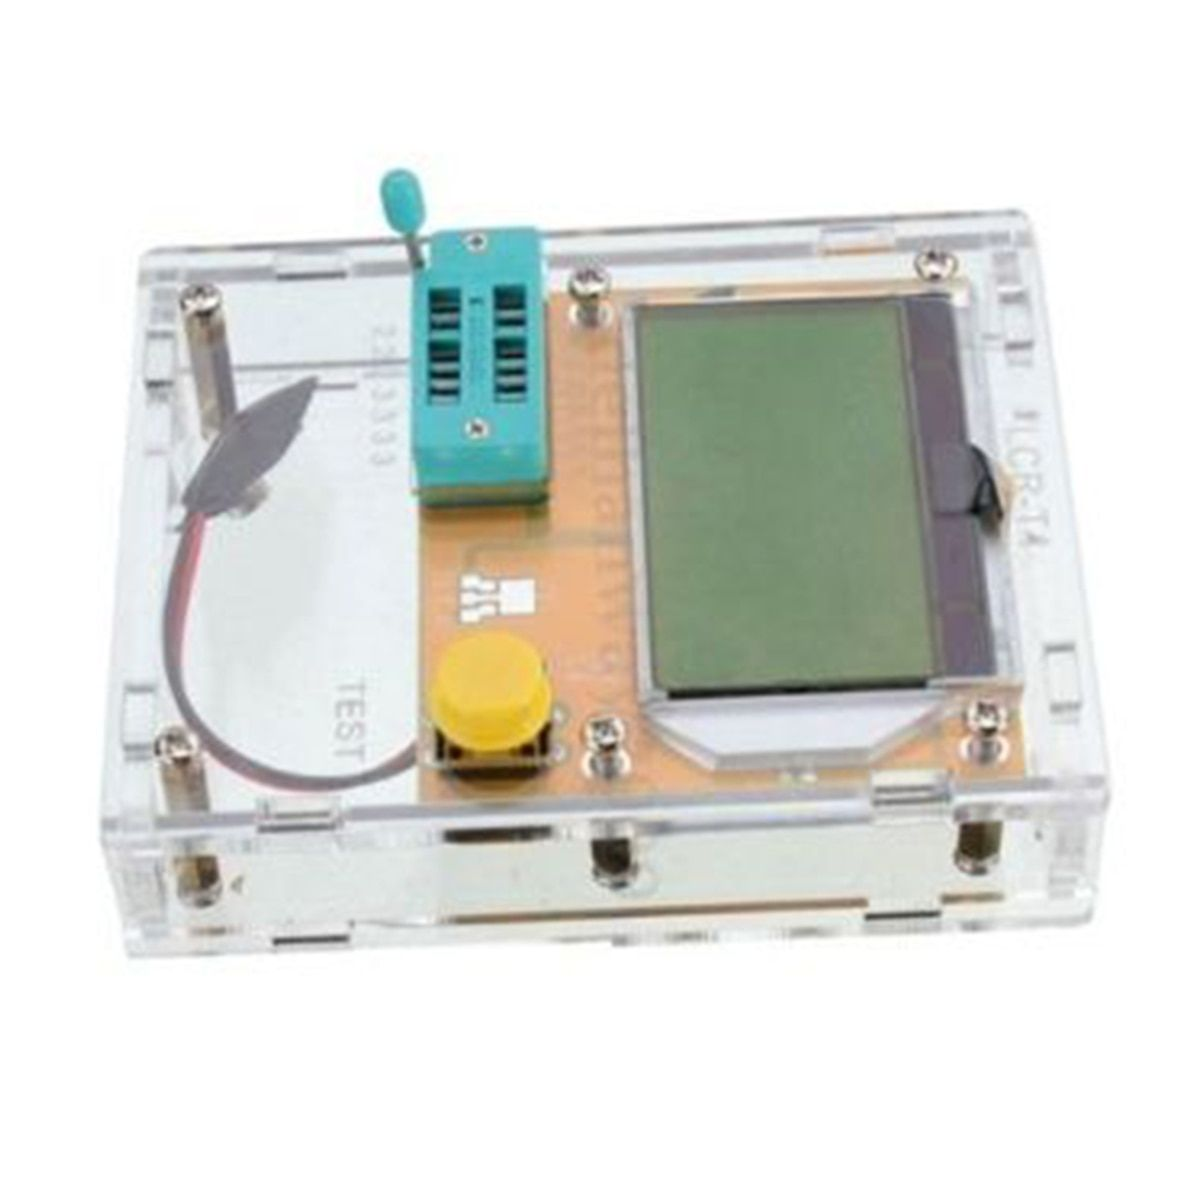 LCR-T4 ESR Meter LED Transistor Tester Diode Triode Capacitance M328 Multifunction Tester Multimeter with Acrylic Case